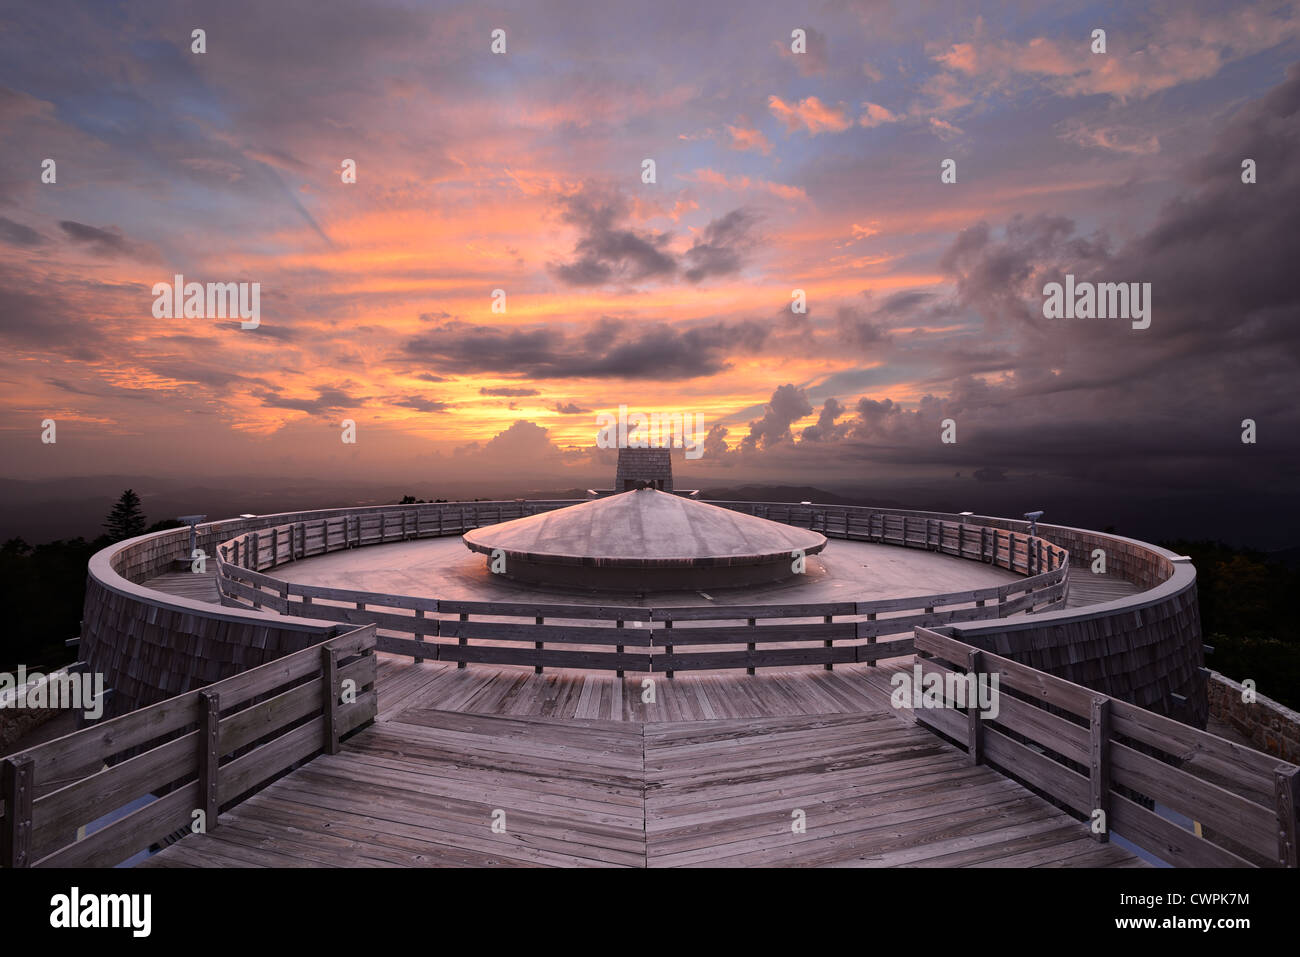 Observatory atop the summit of Brasstown Bald Mountain in Georgia, USA. - Stock Image